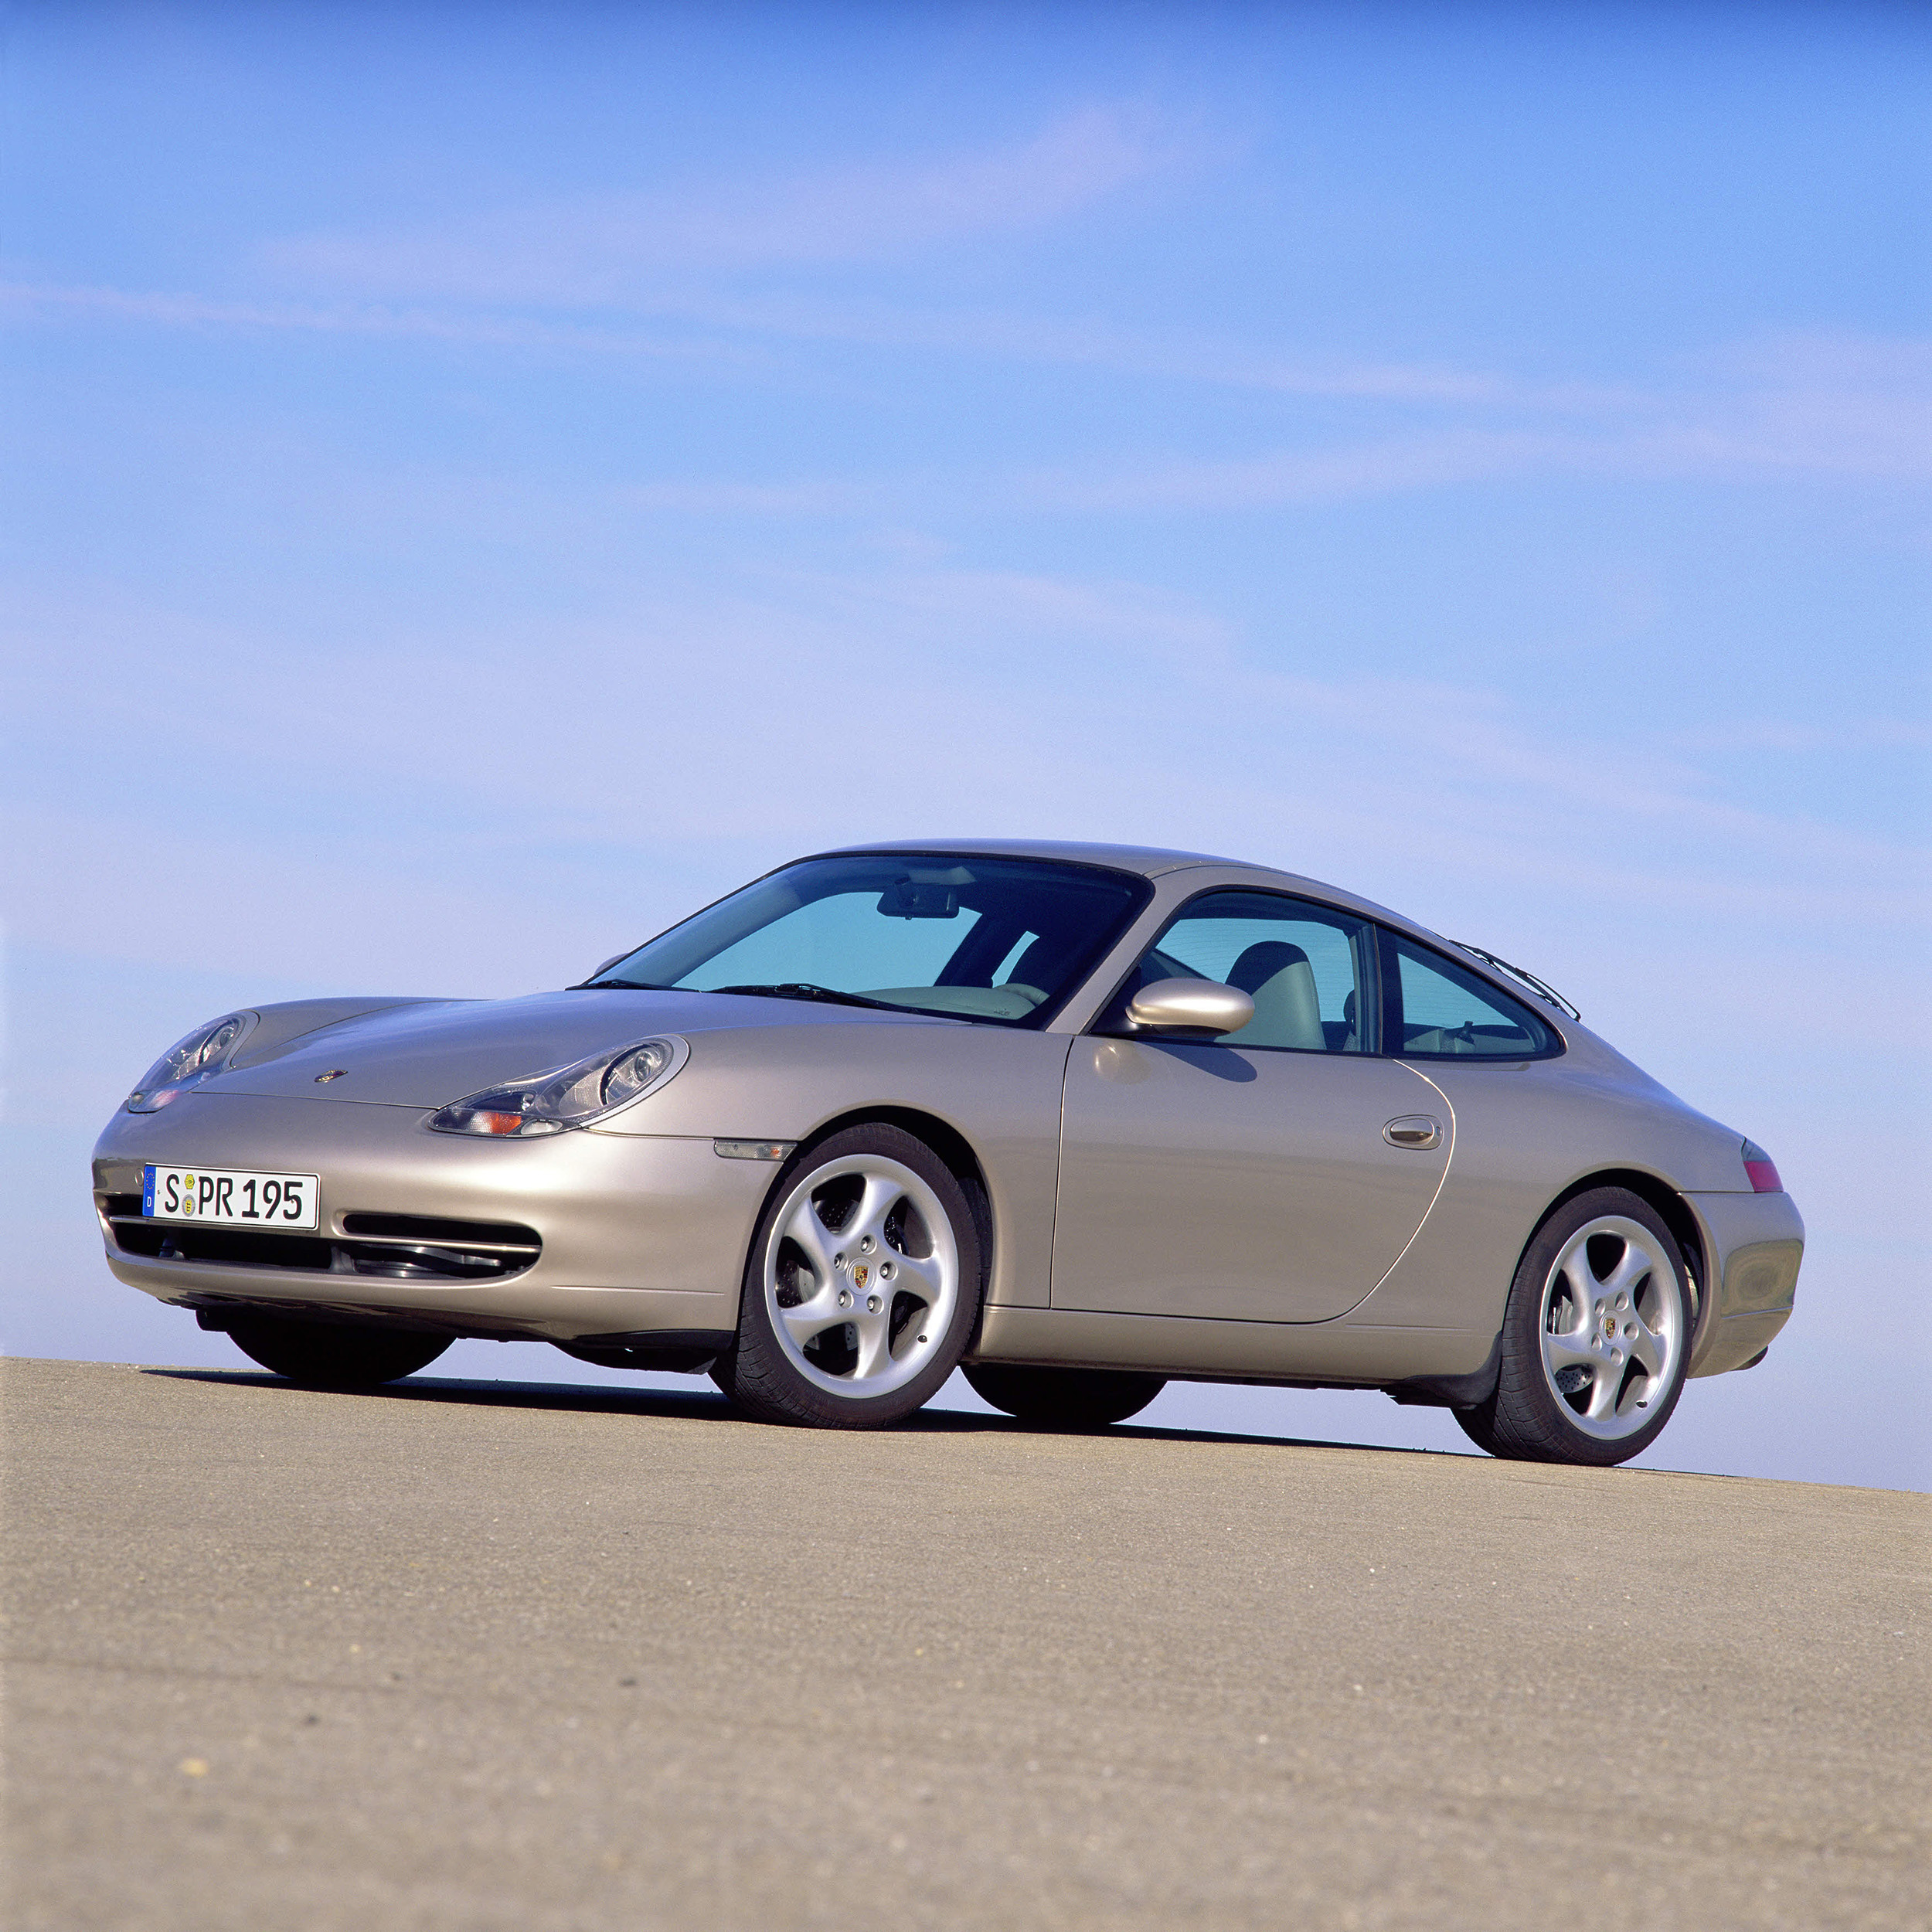 1995 Porsche 911 Exterior: 1997: The 996 With Water Cooling